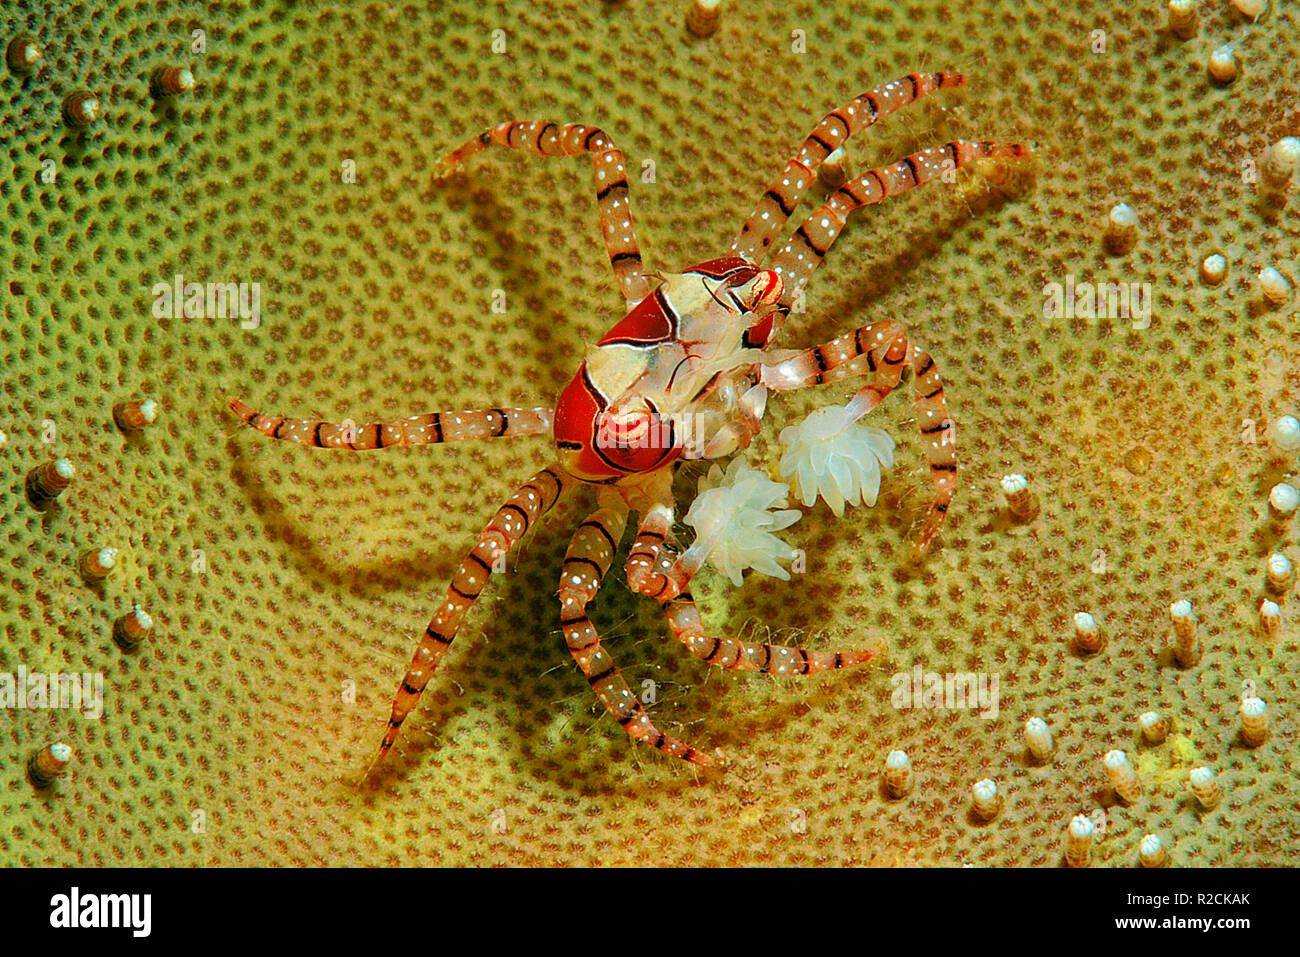 Boxer crab or Pom Pom Crab (Lybia tessellata) with eggs, is associated with anemones (Triactis sp.), Walindi, Papua Neu Guinea - Stock Image